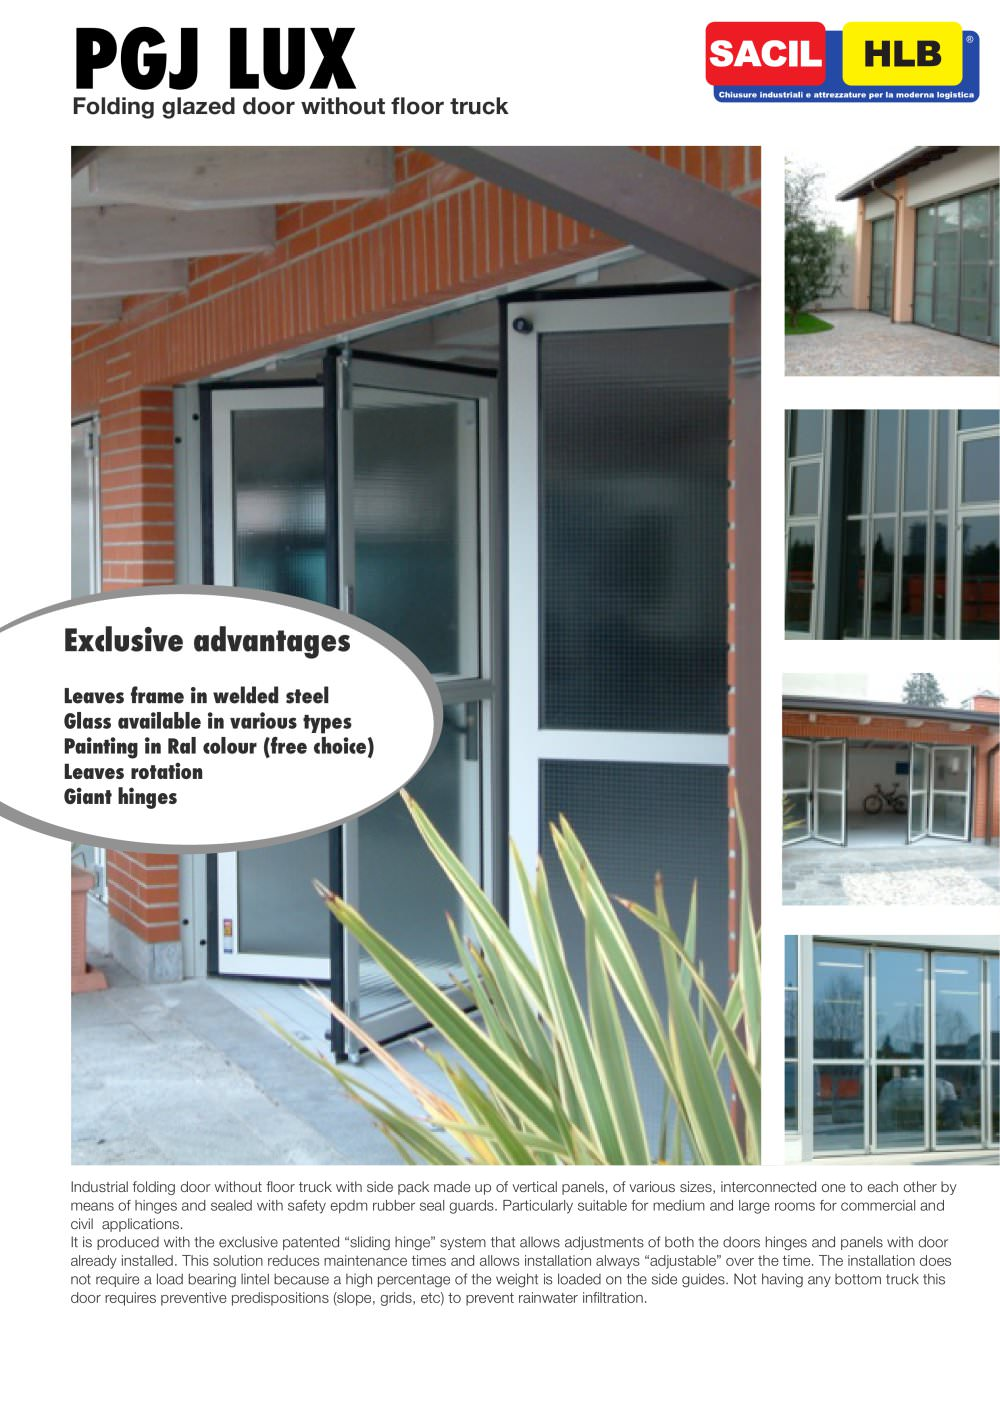 Folding door without floor track / PGJ LUX 3000 - SACIL HLB - PDF ...